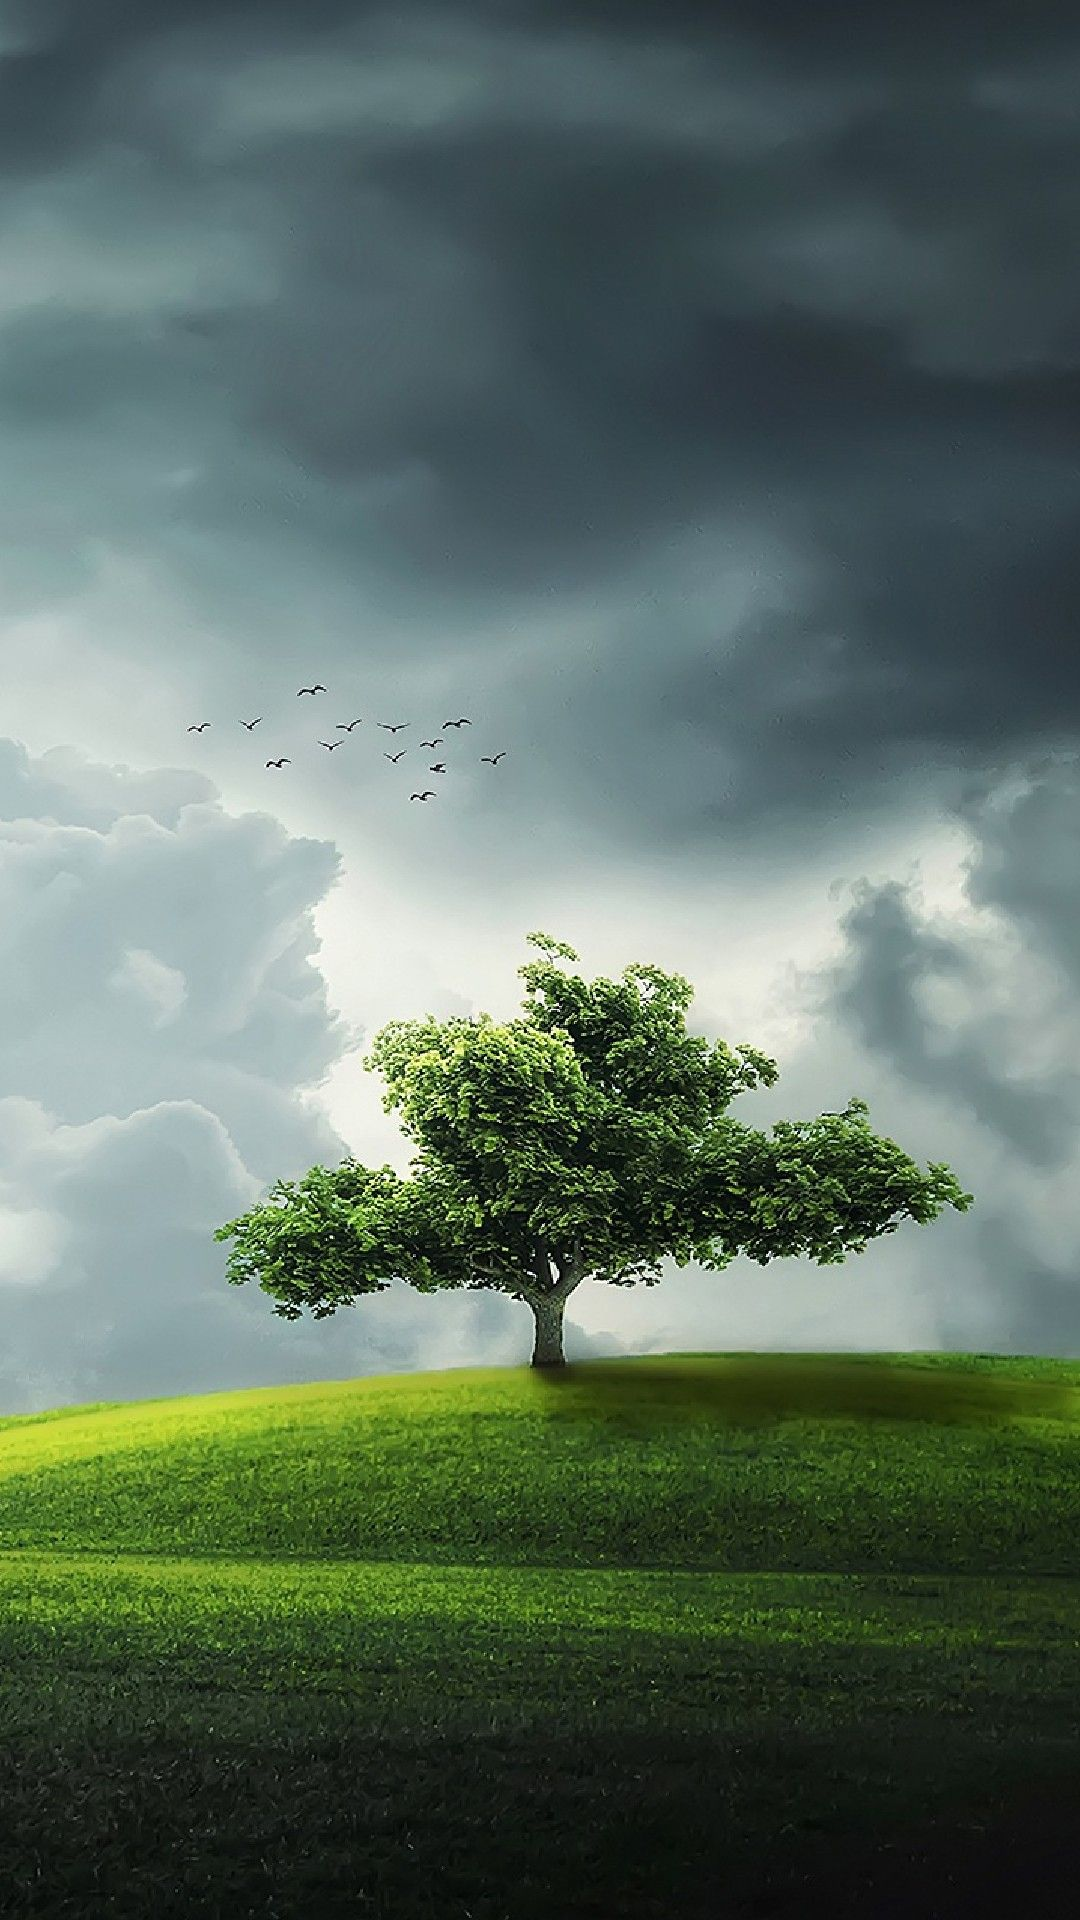 Alone Tree in Field Phone Wallpaper Lockscreen HD 4K